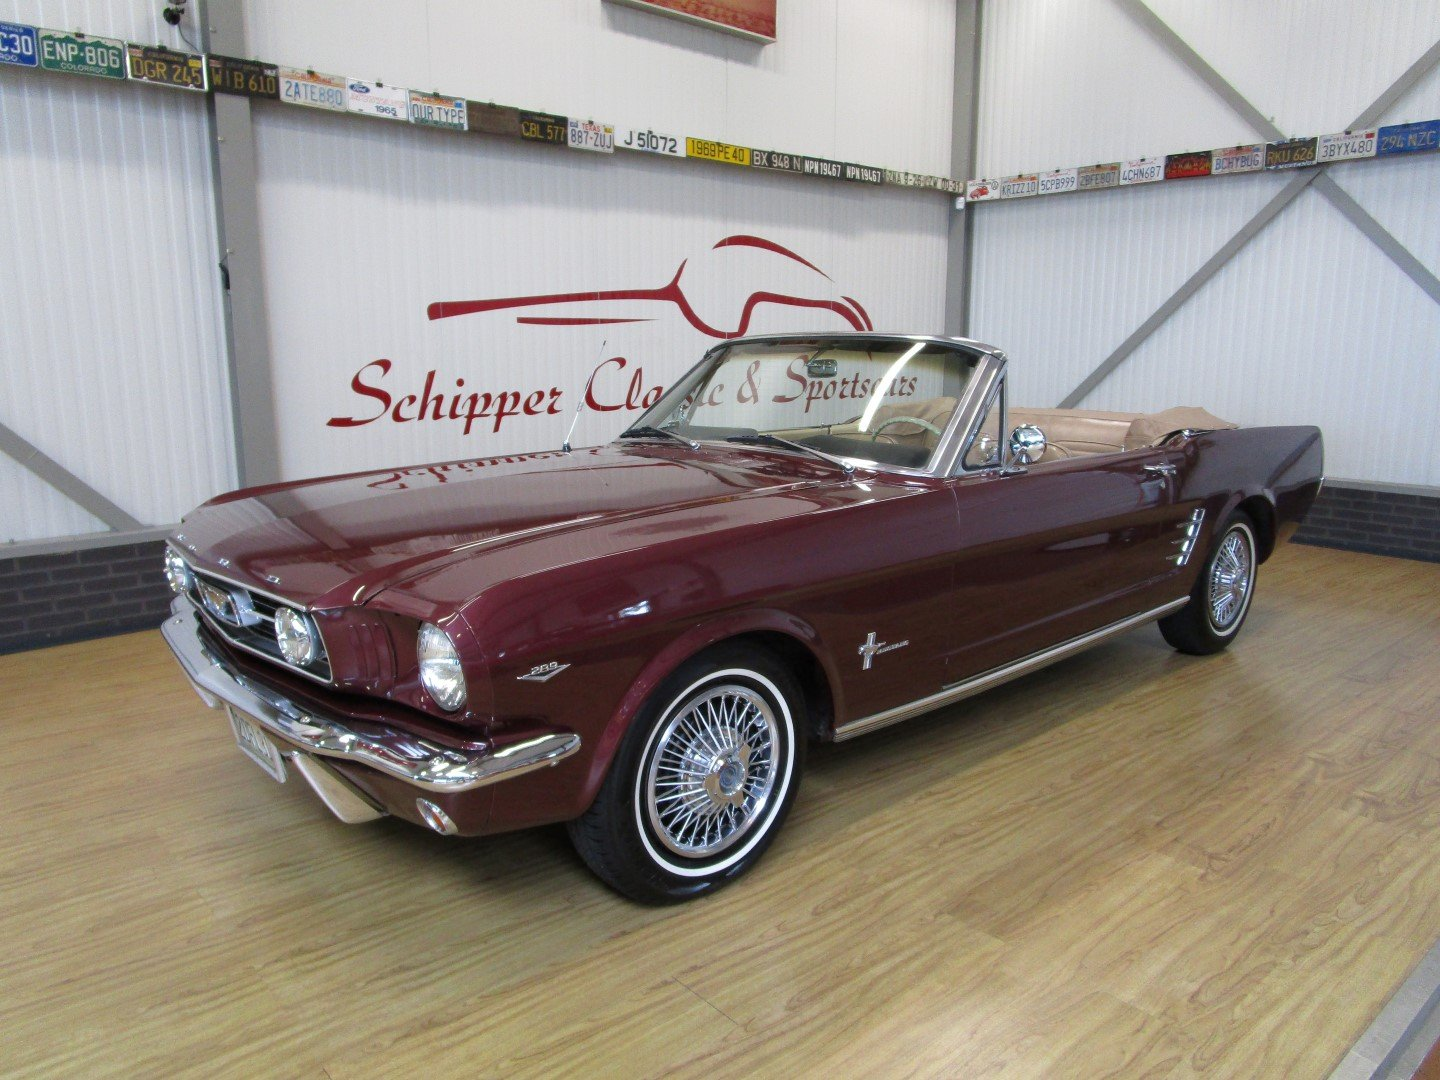 1966 Ford Mustang 289 V8 Cabrio For Sale (picture 1 of 6)